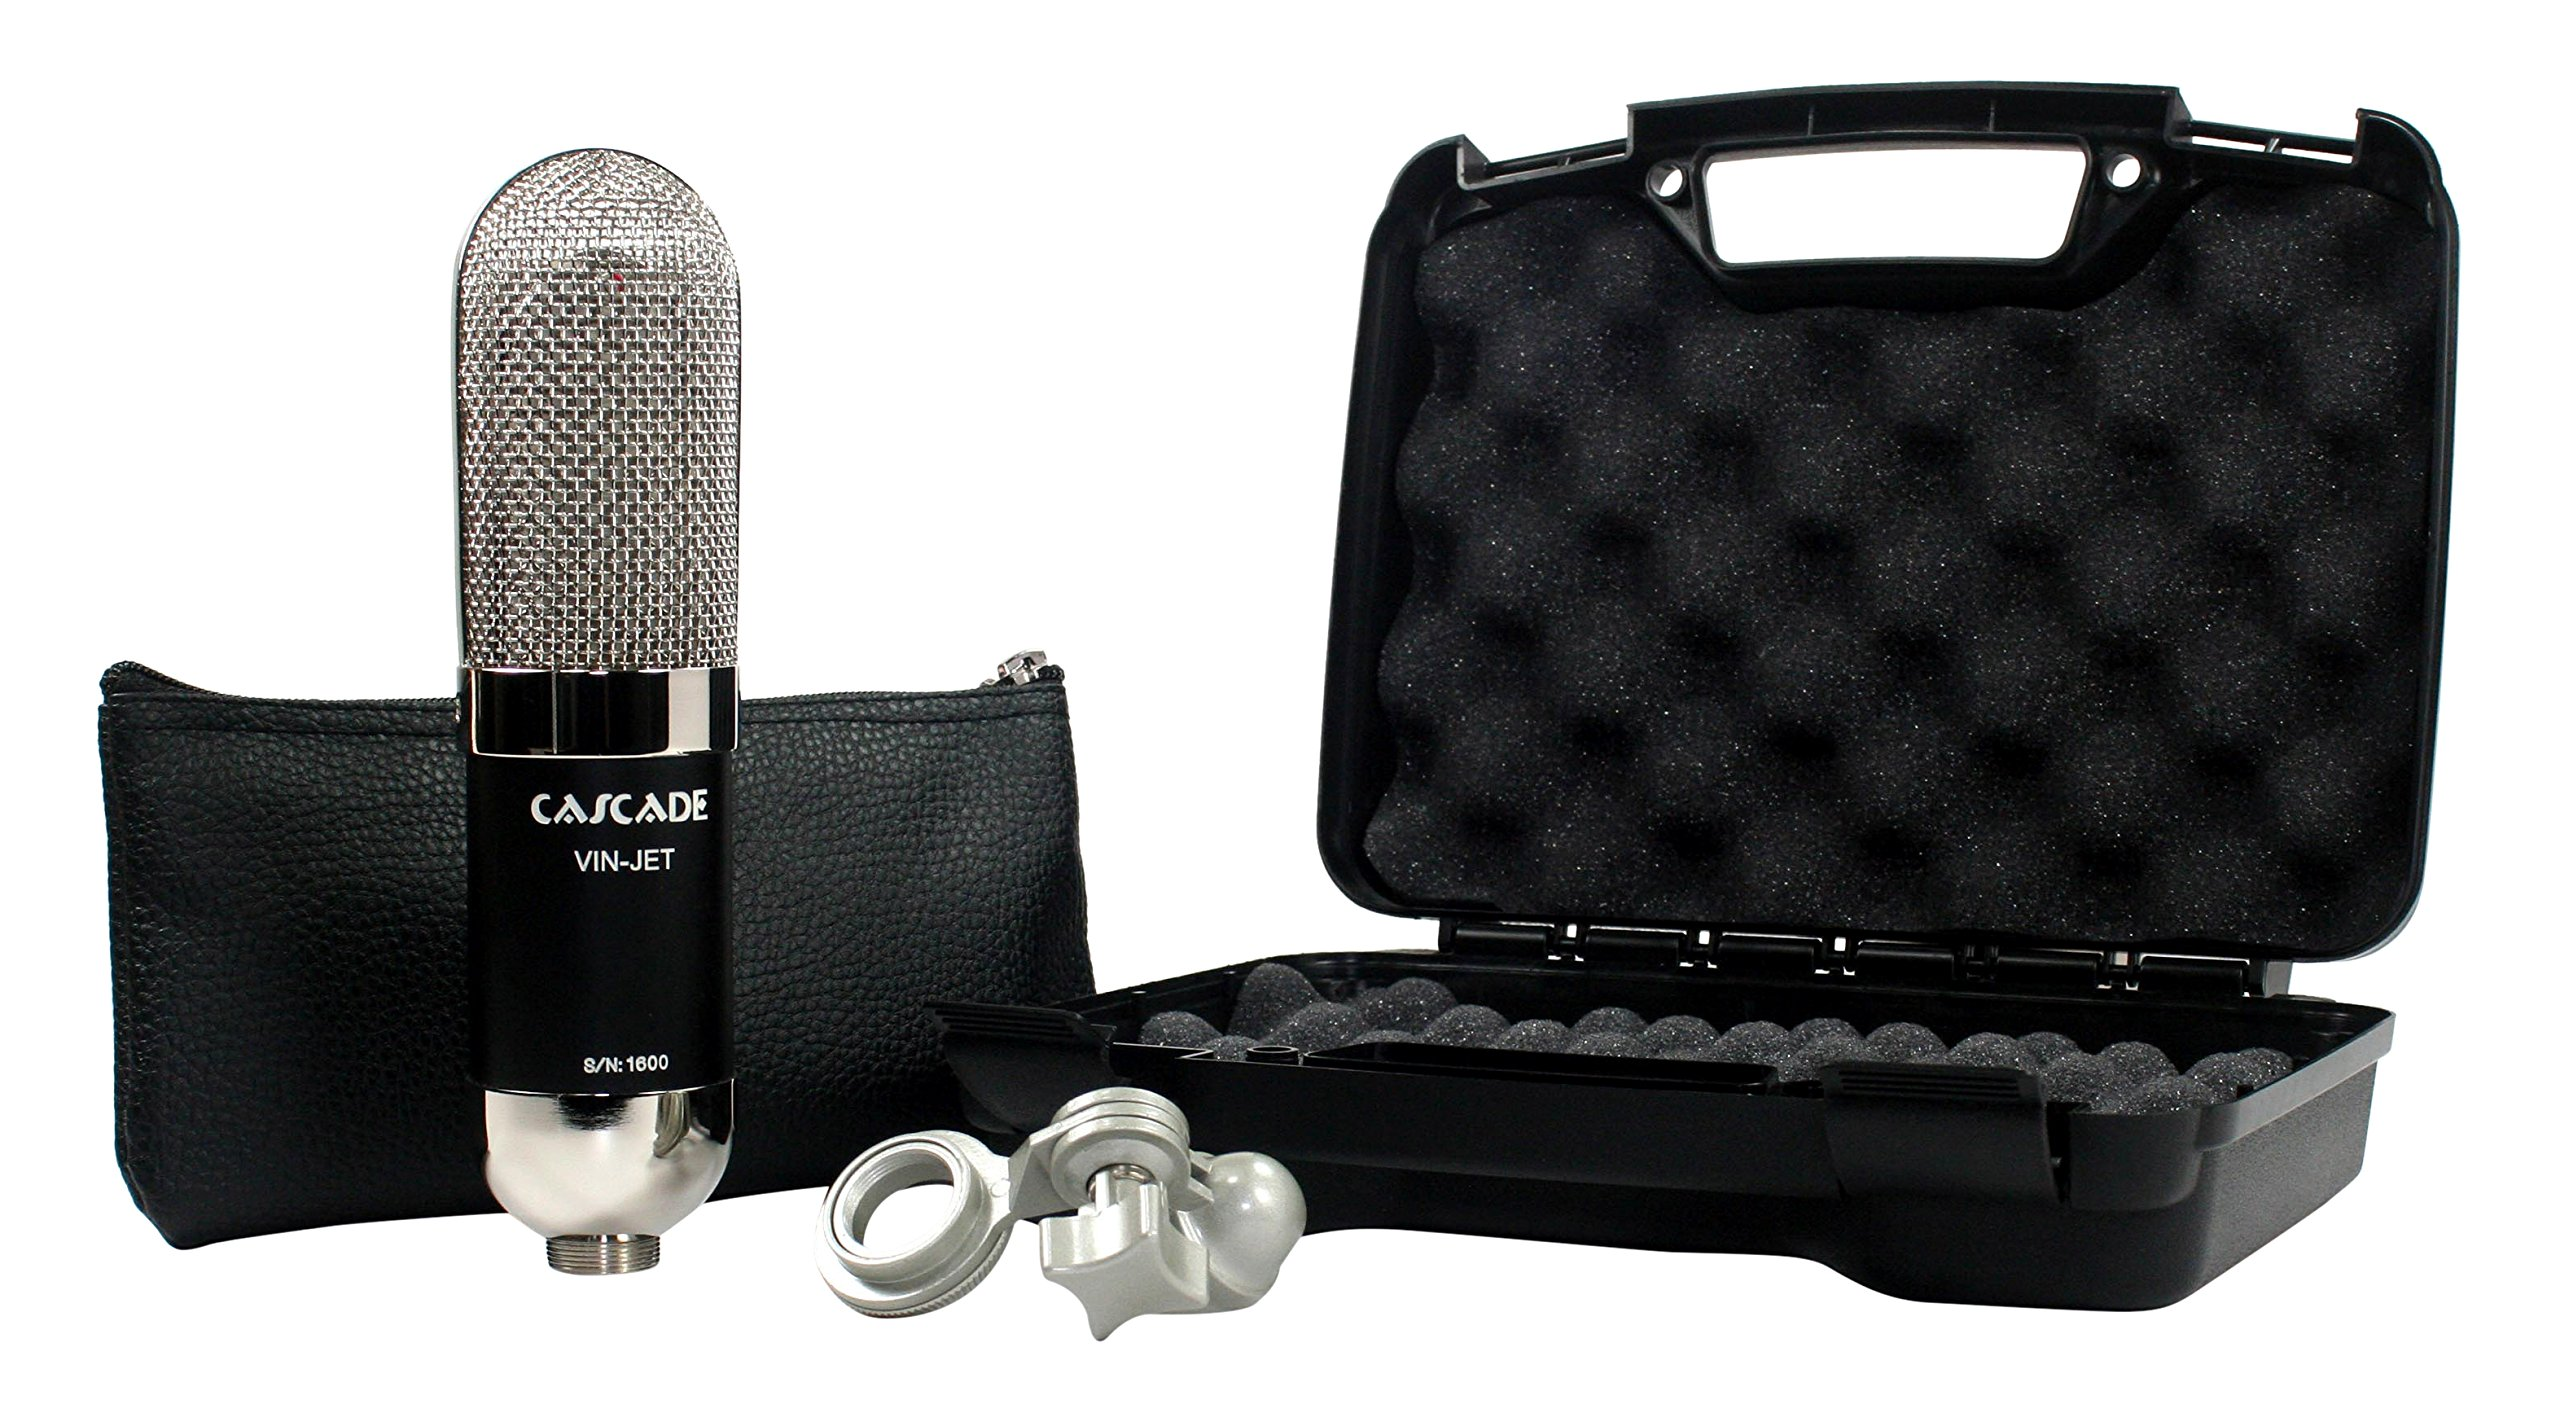 Cascade Microphones VIN-JET Lundahl - Black/Nickel Ribbon Microphone, Black Body/Polished Nickel Grill